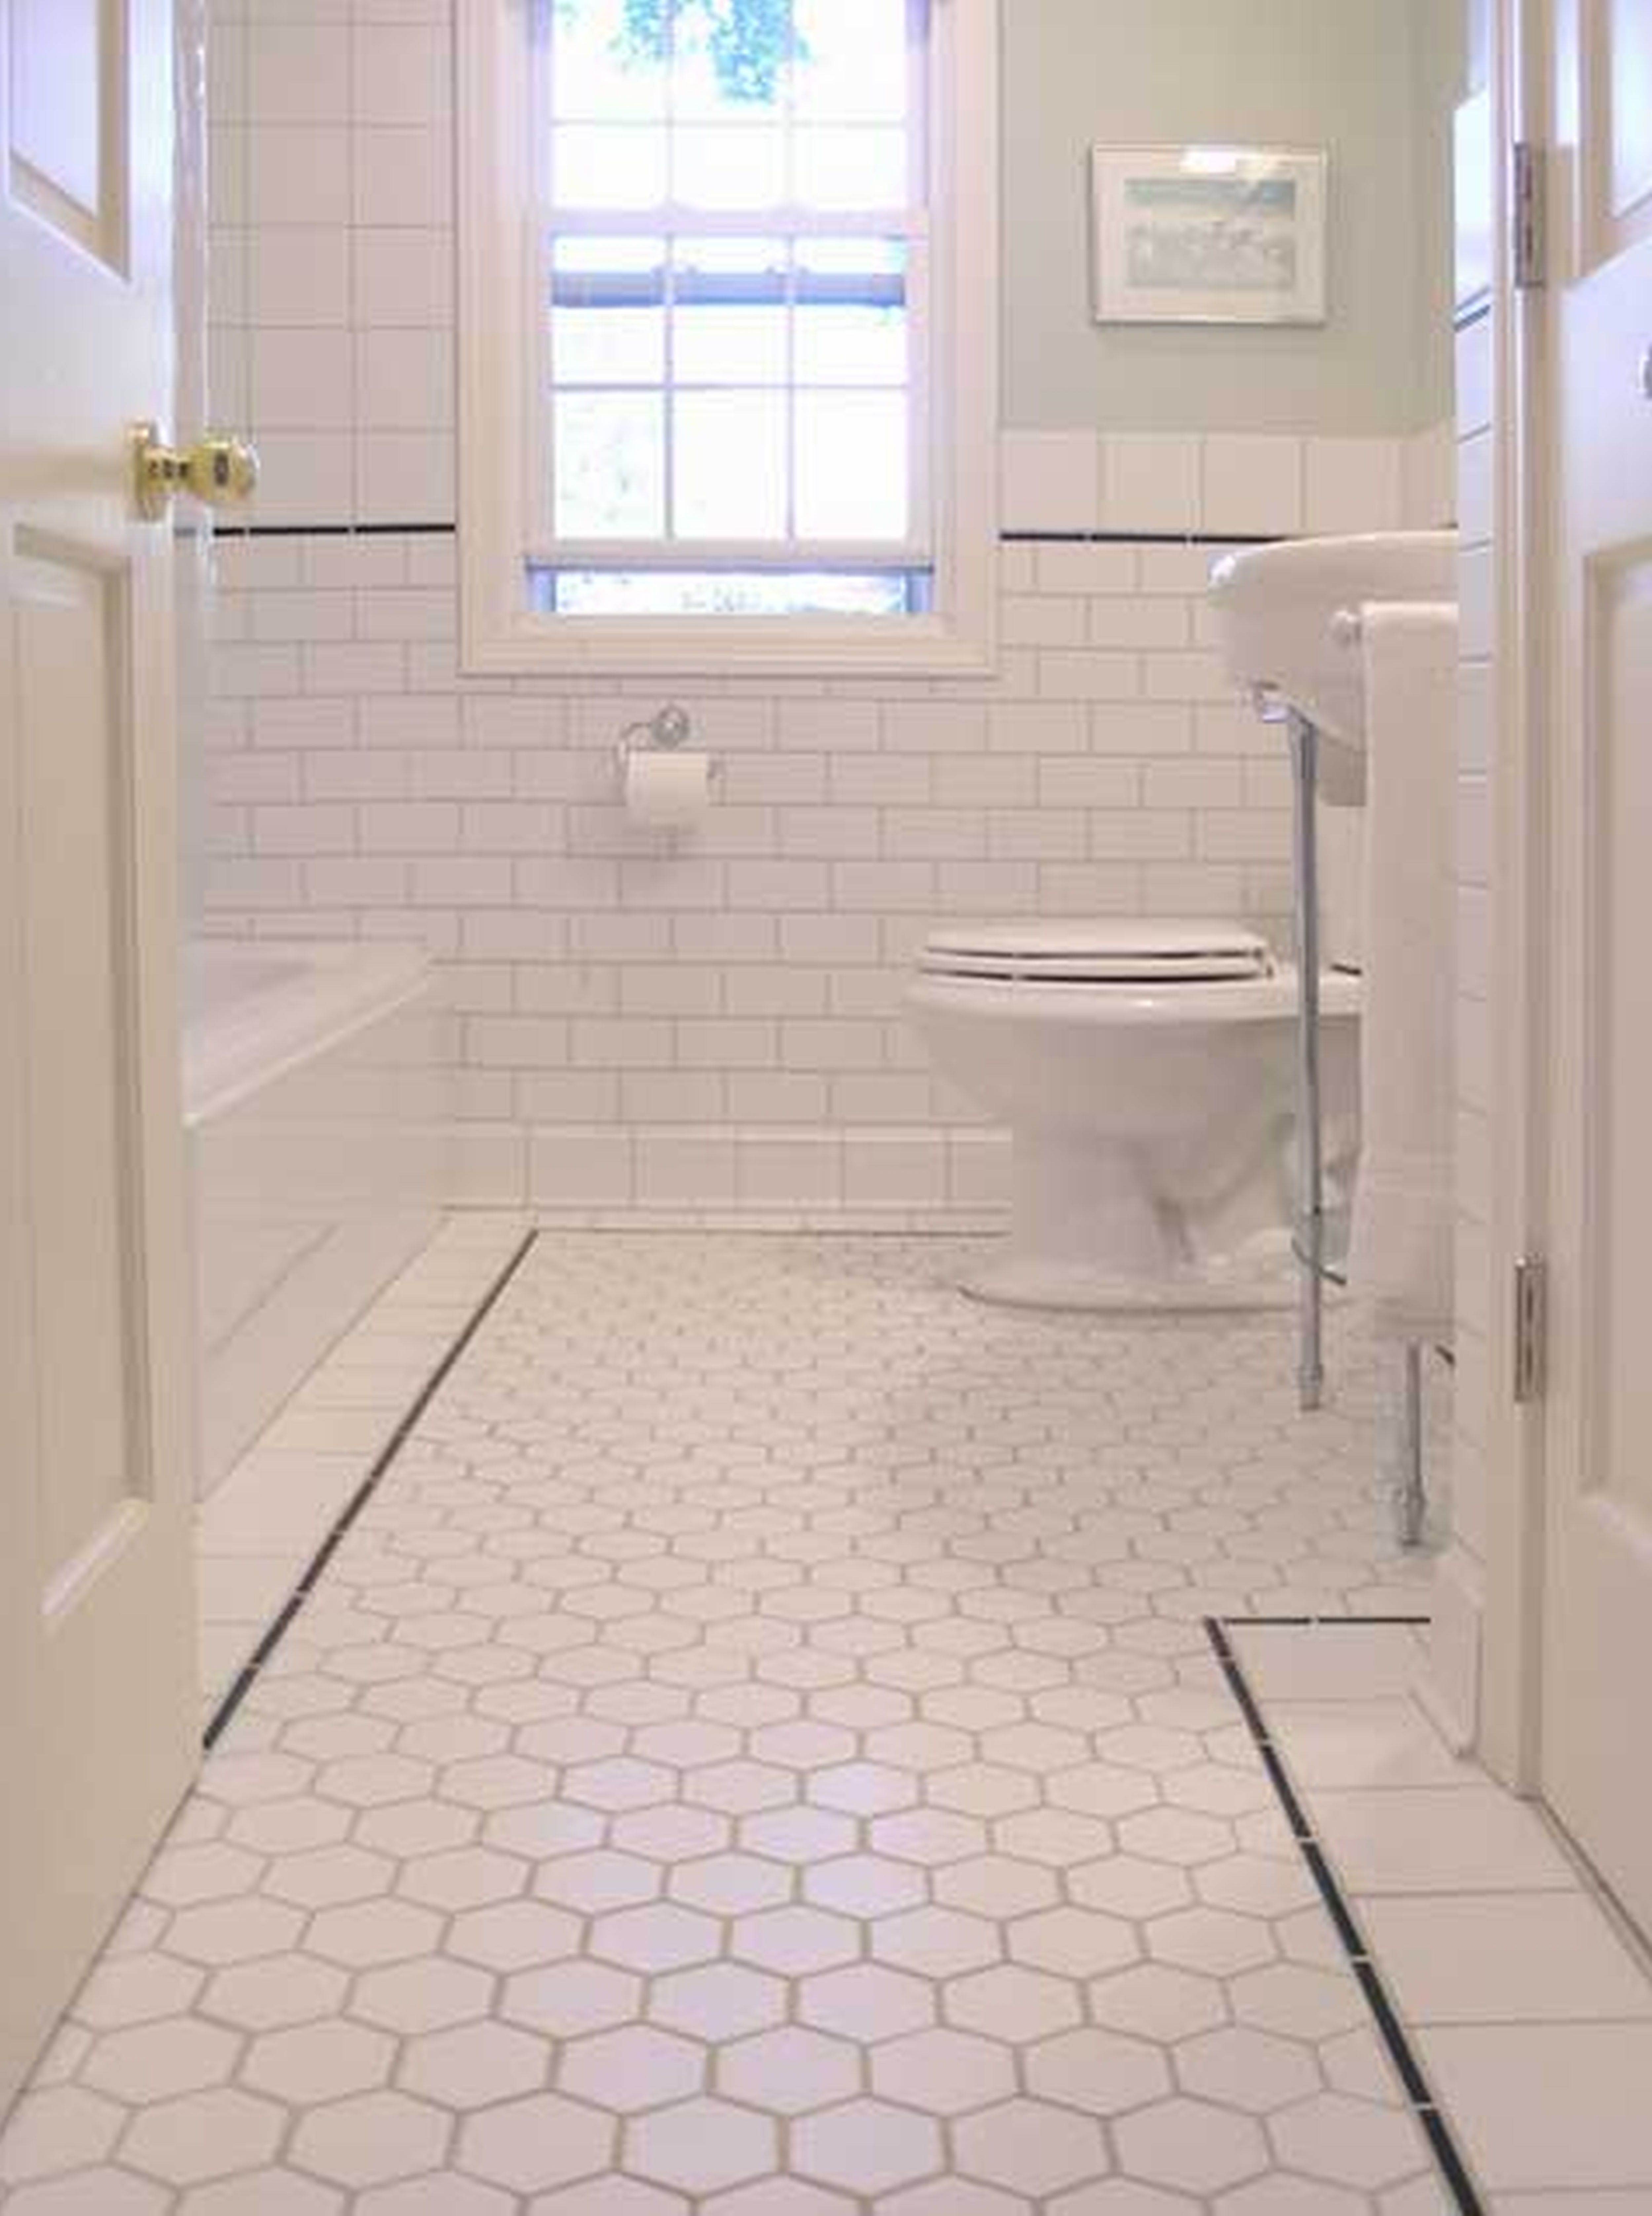 36 nice ideas and pictures of vintage bathroom tile design for Bathroom tile ideas